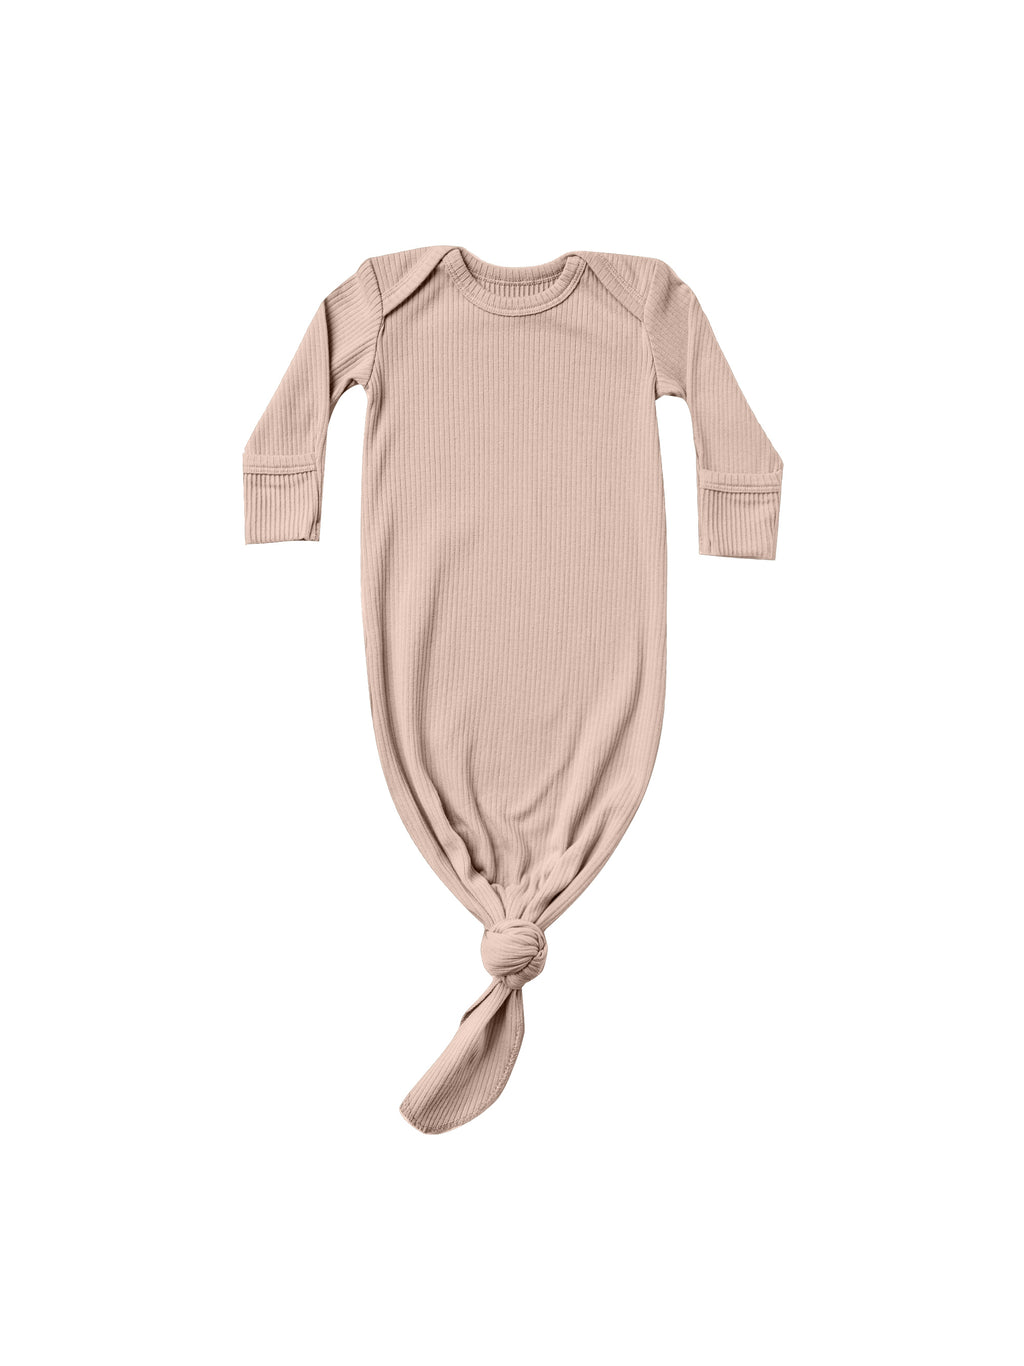 Quincy Mae Ribbed Knotted Baby Gown - Petal